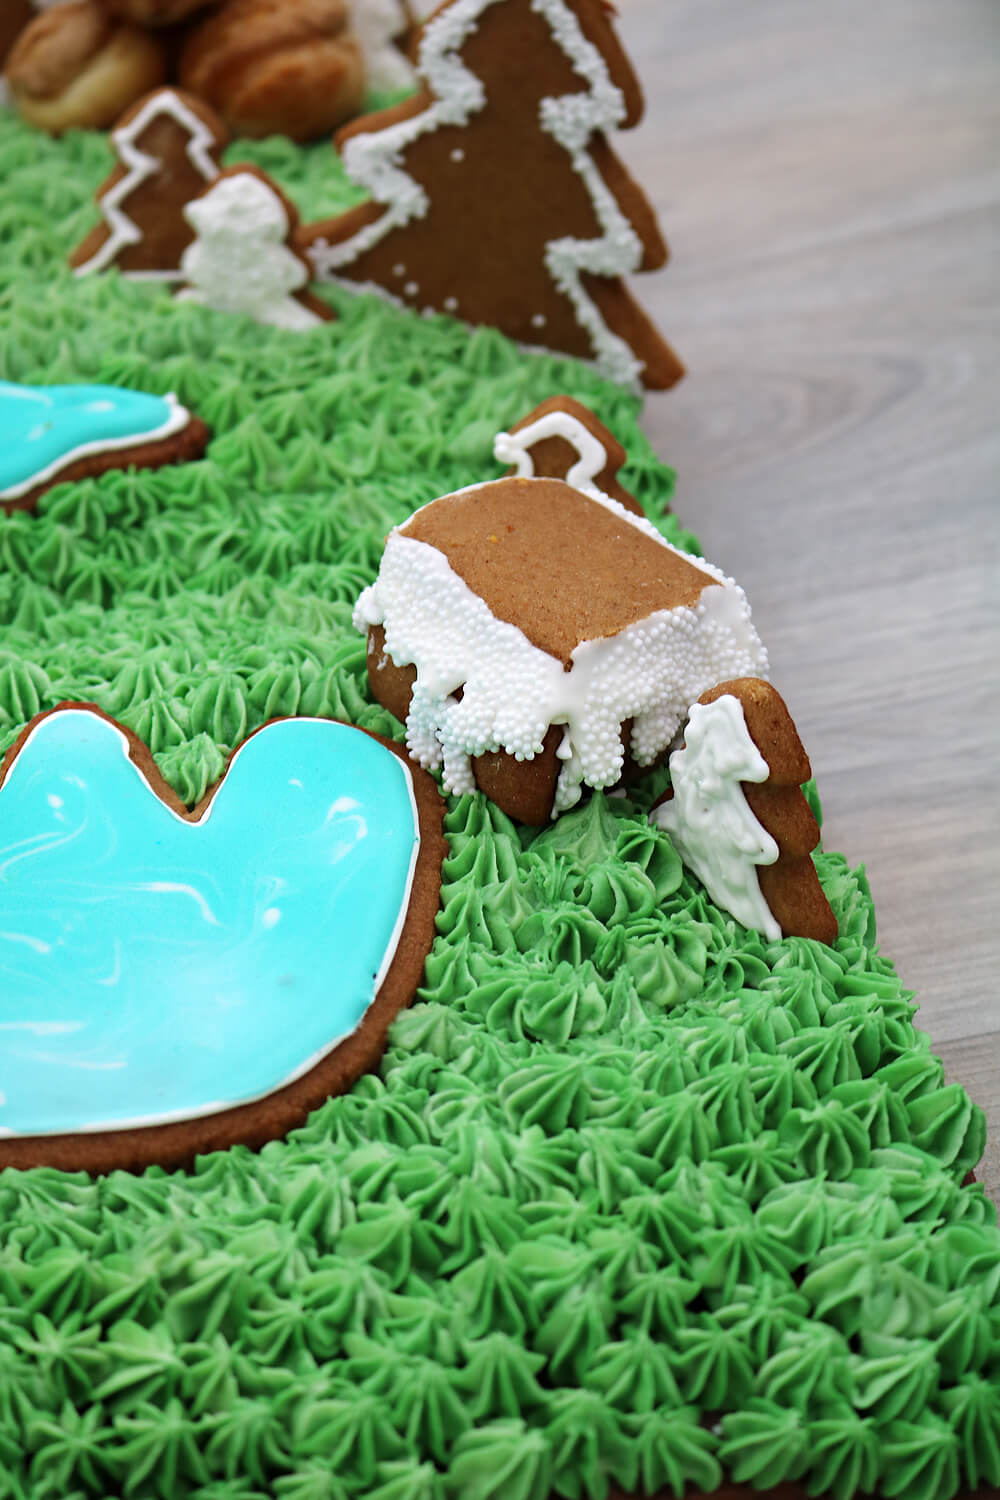 Central Park Landscape Cake | Bake Off Bake Along | Take Some Whisks